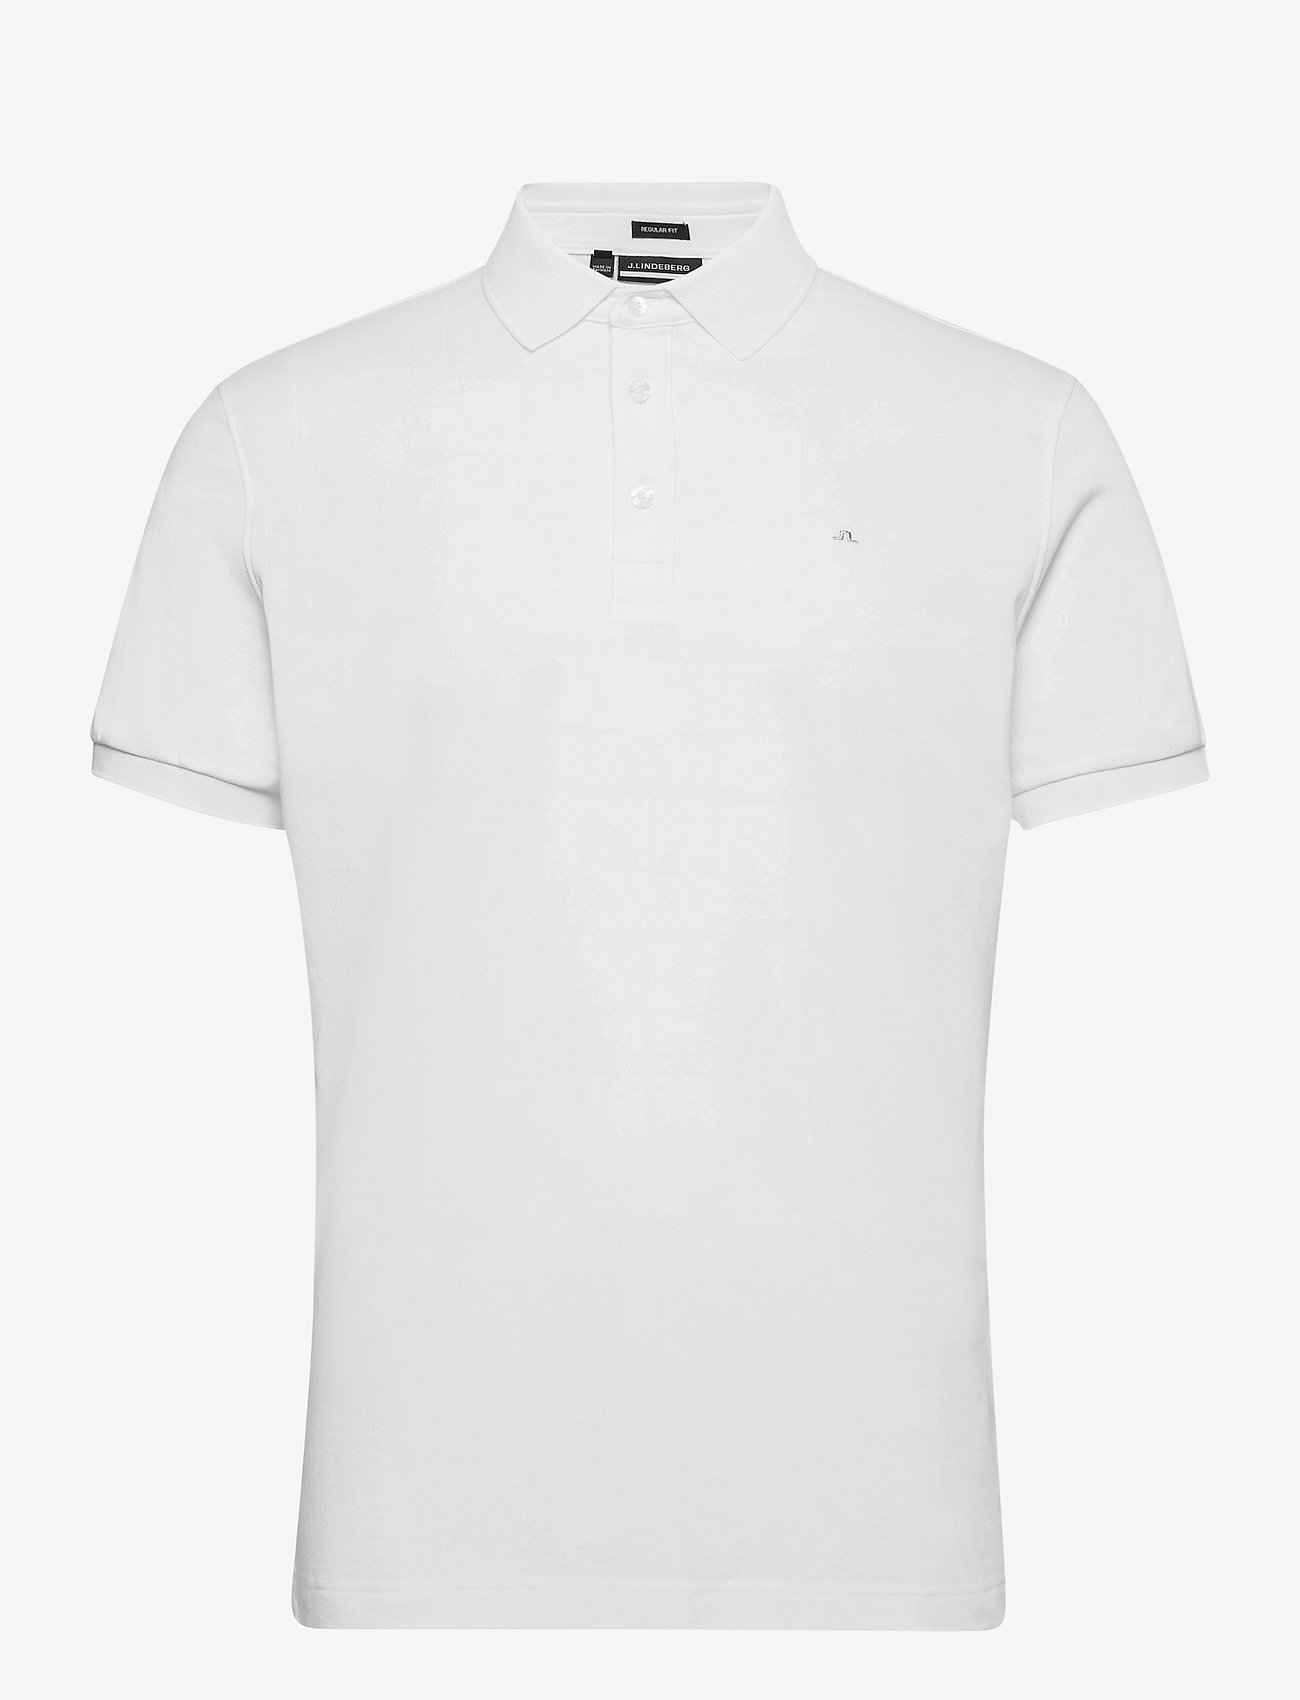 J. Lindeberg Golf - Stan Regular Fit Golf Polo - kurzärmelig - white - 1